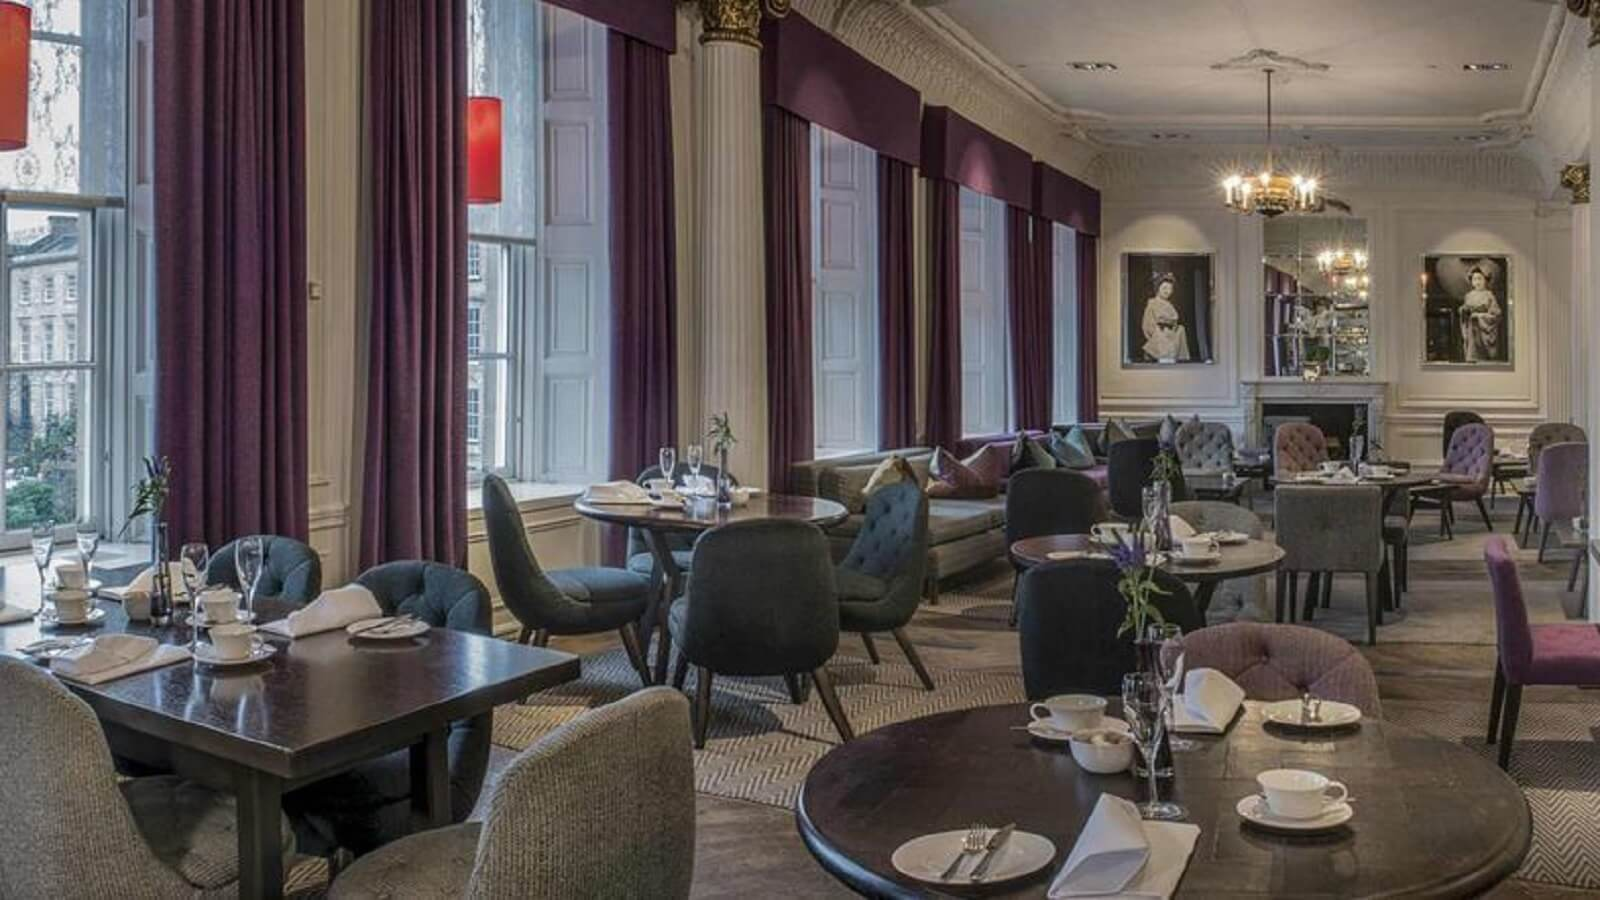 The Restaurant at Blythswood Square